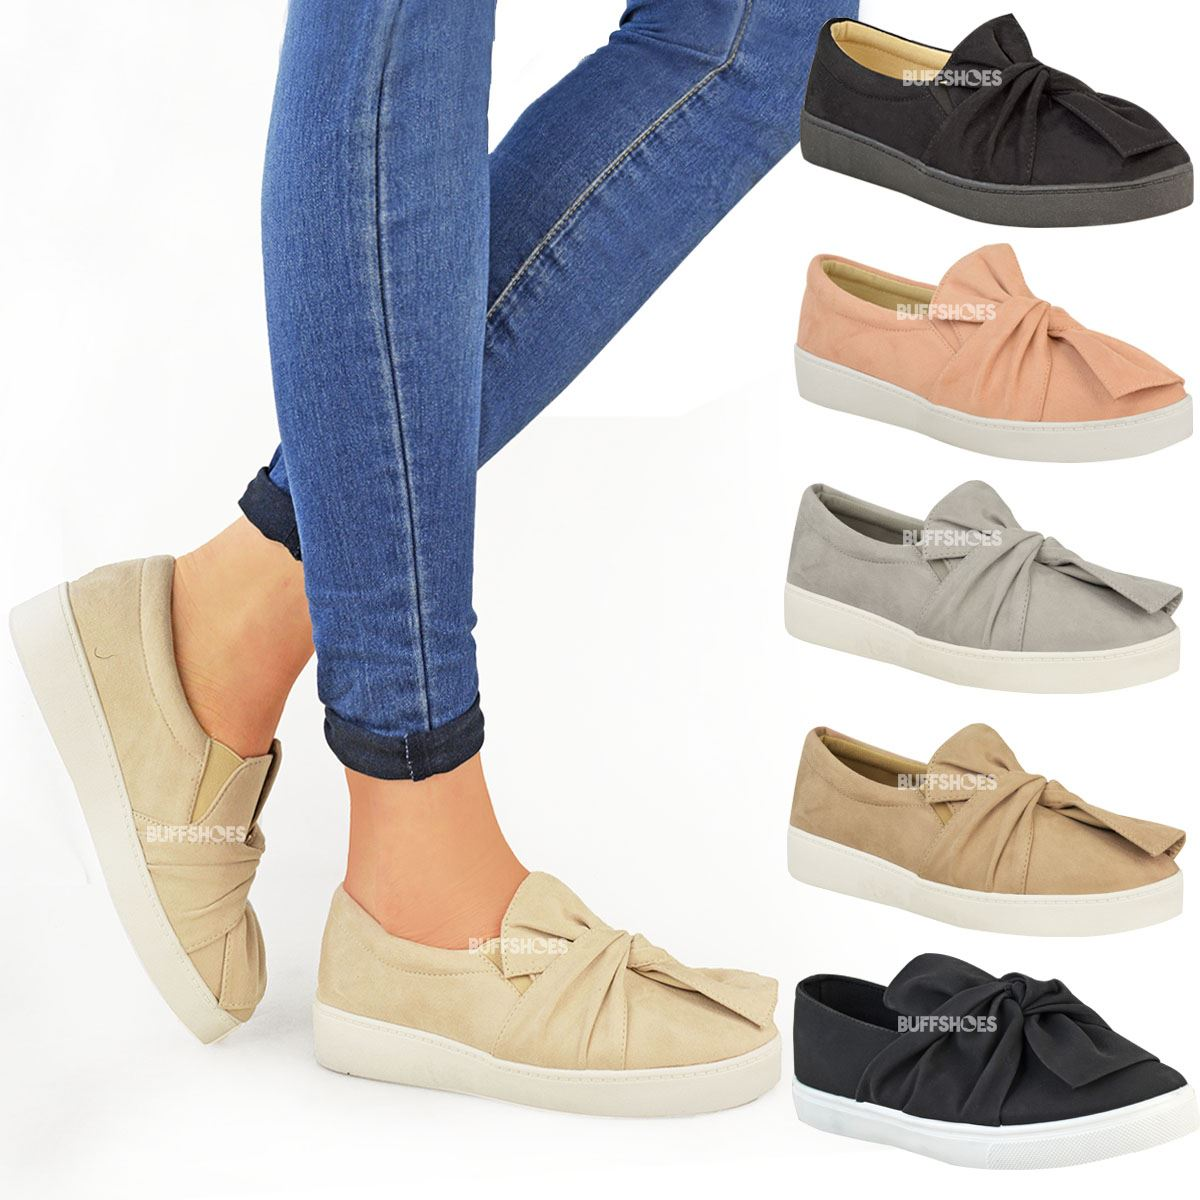 7ab8e18a1 New Womens Ladies Trainers Faux Suede Slip On Flat Bow Sneakers ...